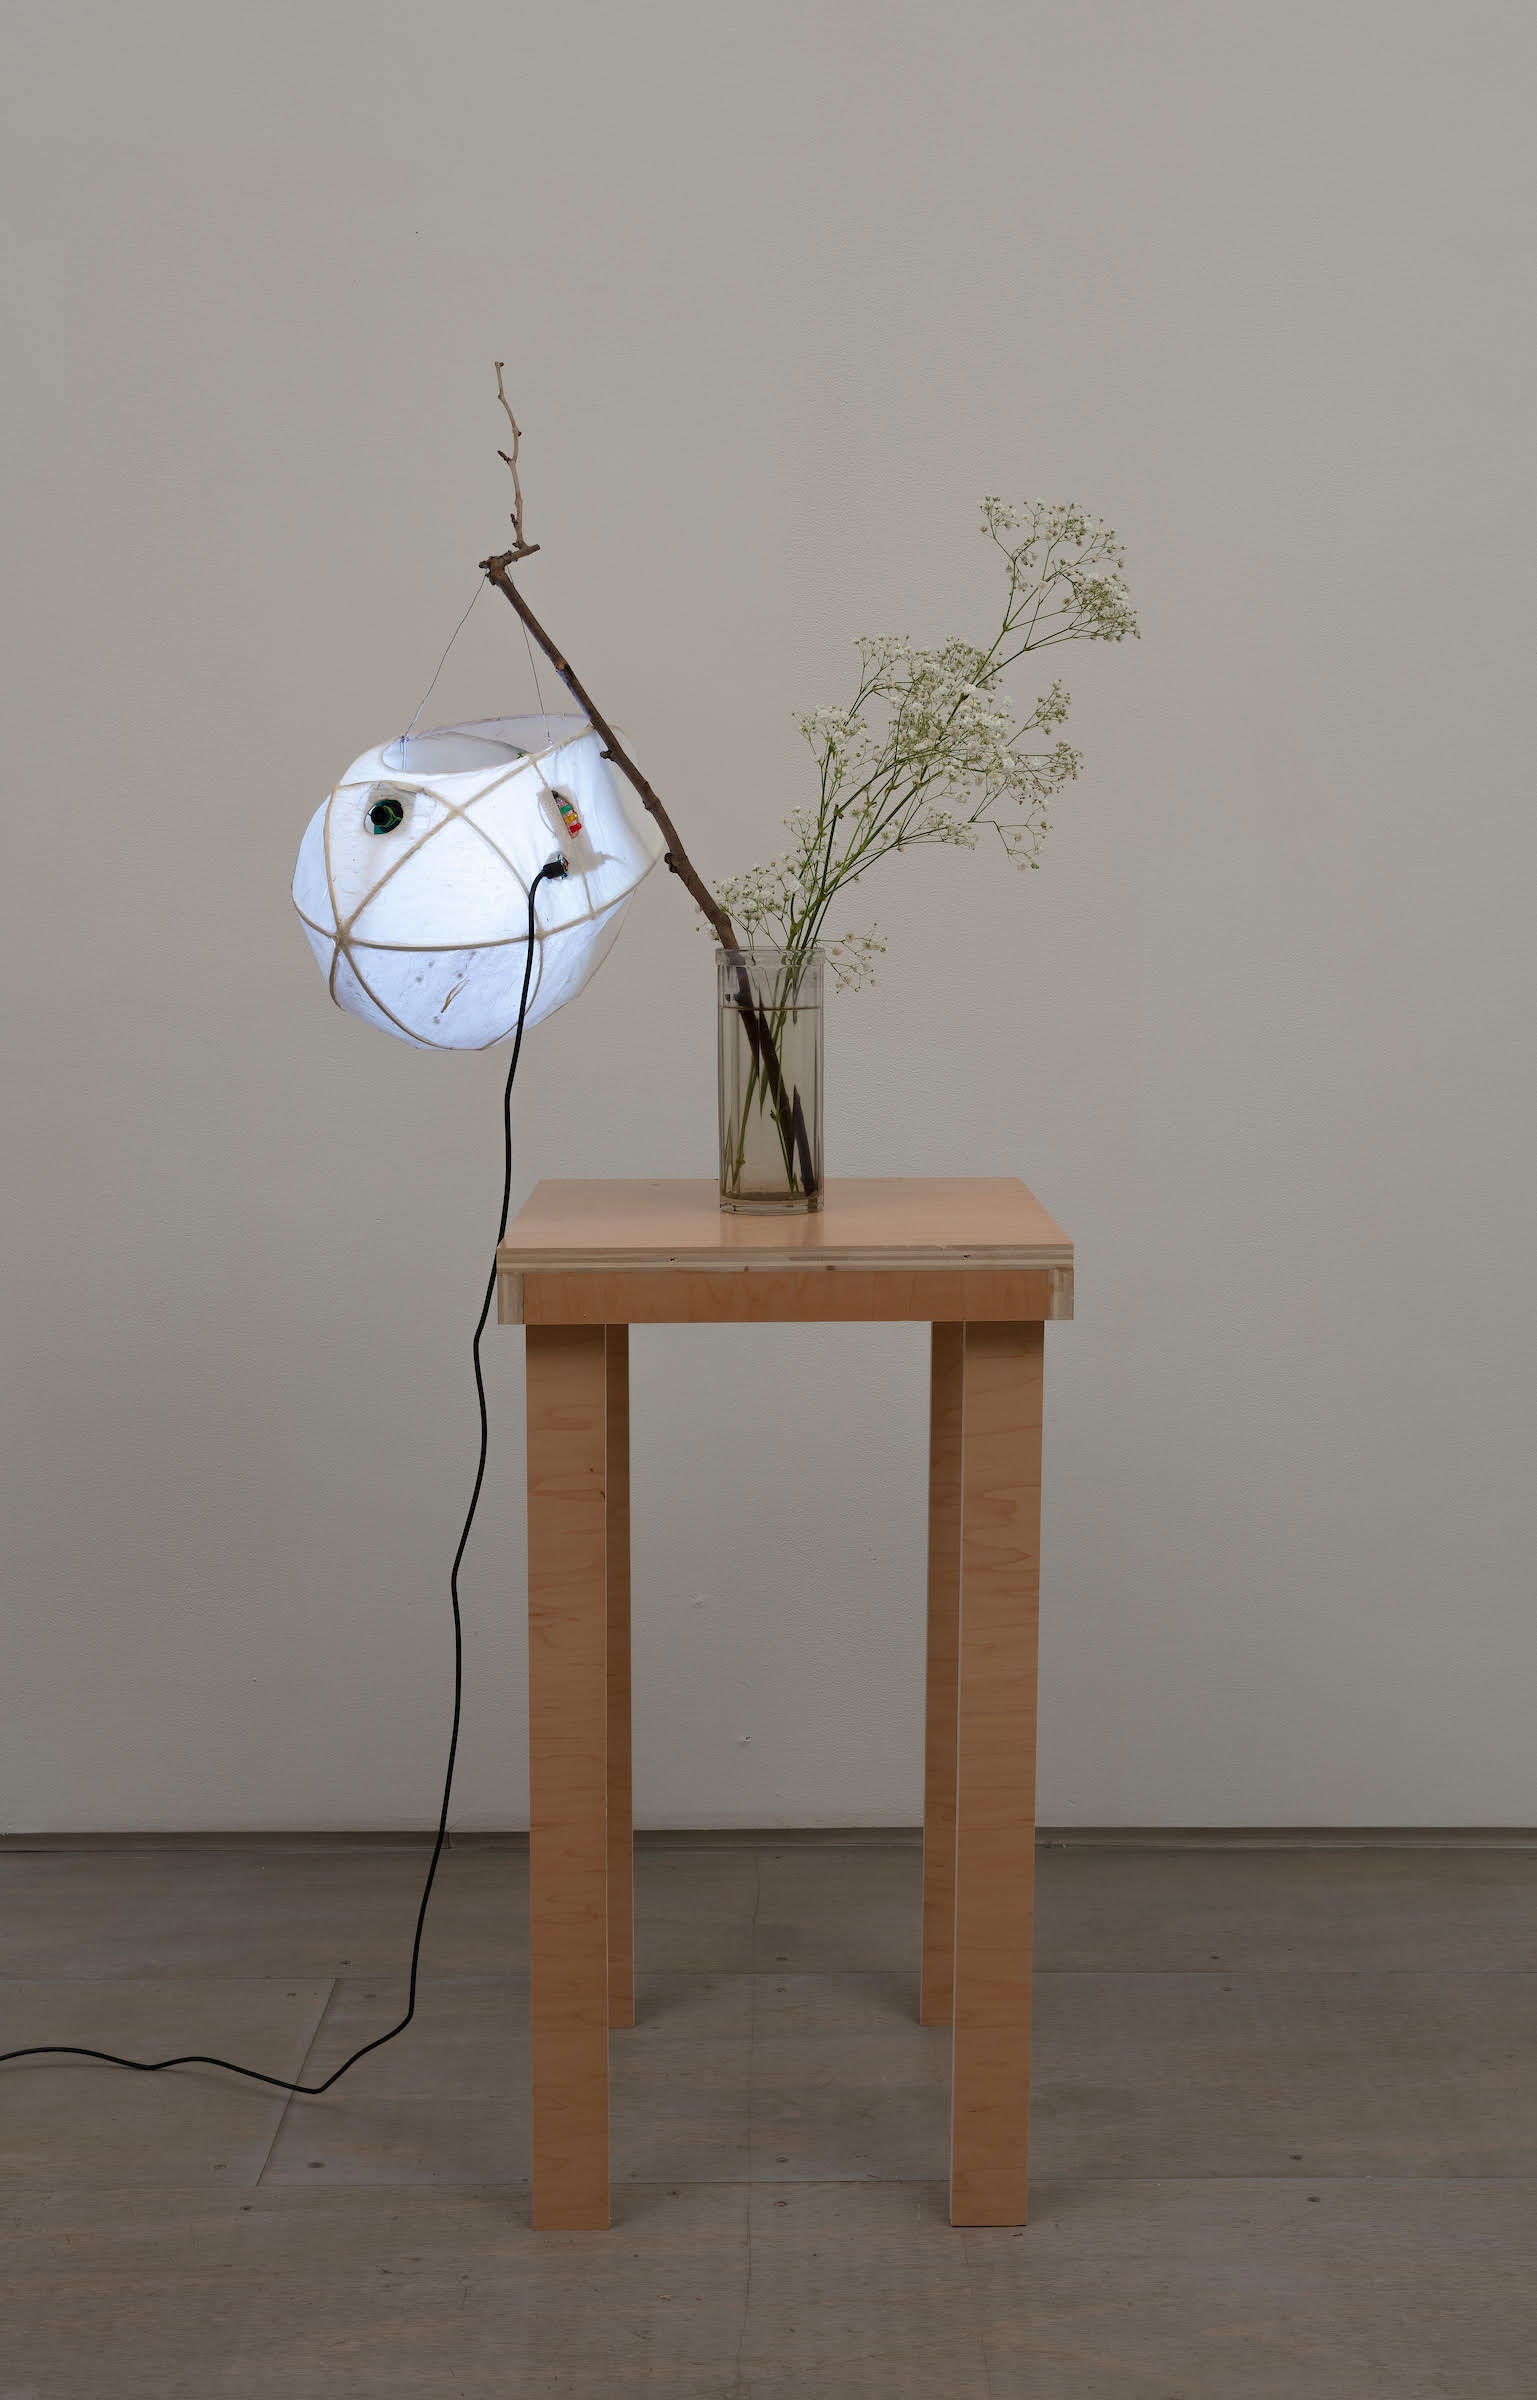 Cici Wu, <em>Foreign Object #2 Umbra and Penumbra (+852 carambola)</em>, 2021. Bamboo wire, paper, glue, metal wire, neopixel led, opencv camera, raspberry pi 4B, power adapter board, switch, led, micro-usb cable, lithium battery, memory card, artist's lantern holder and plinth, 51 1/2 x 20 1/2 x 14 3/4 inches. Courtesy 47 Canal. Photo: Joerg Lohse.